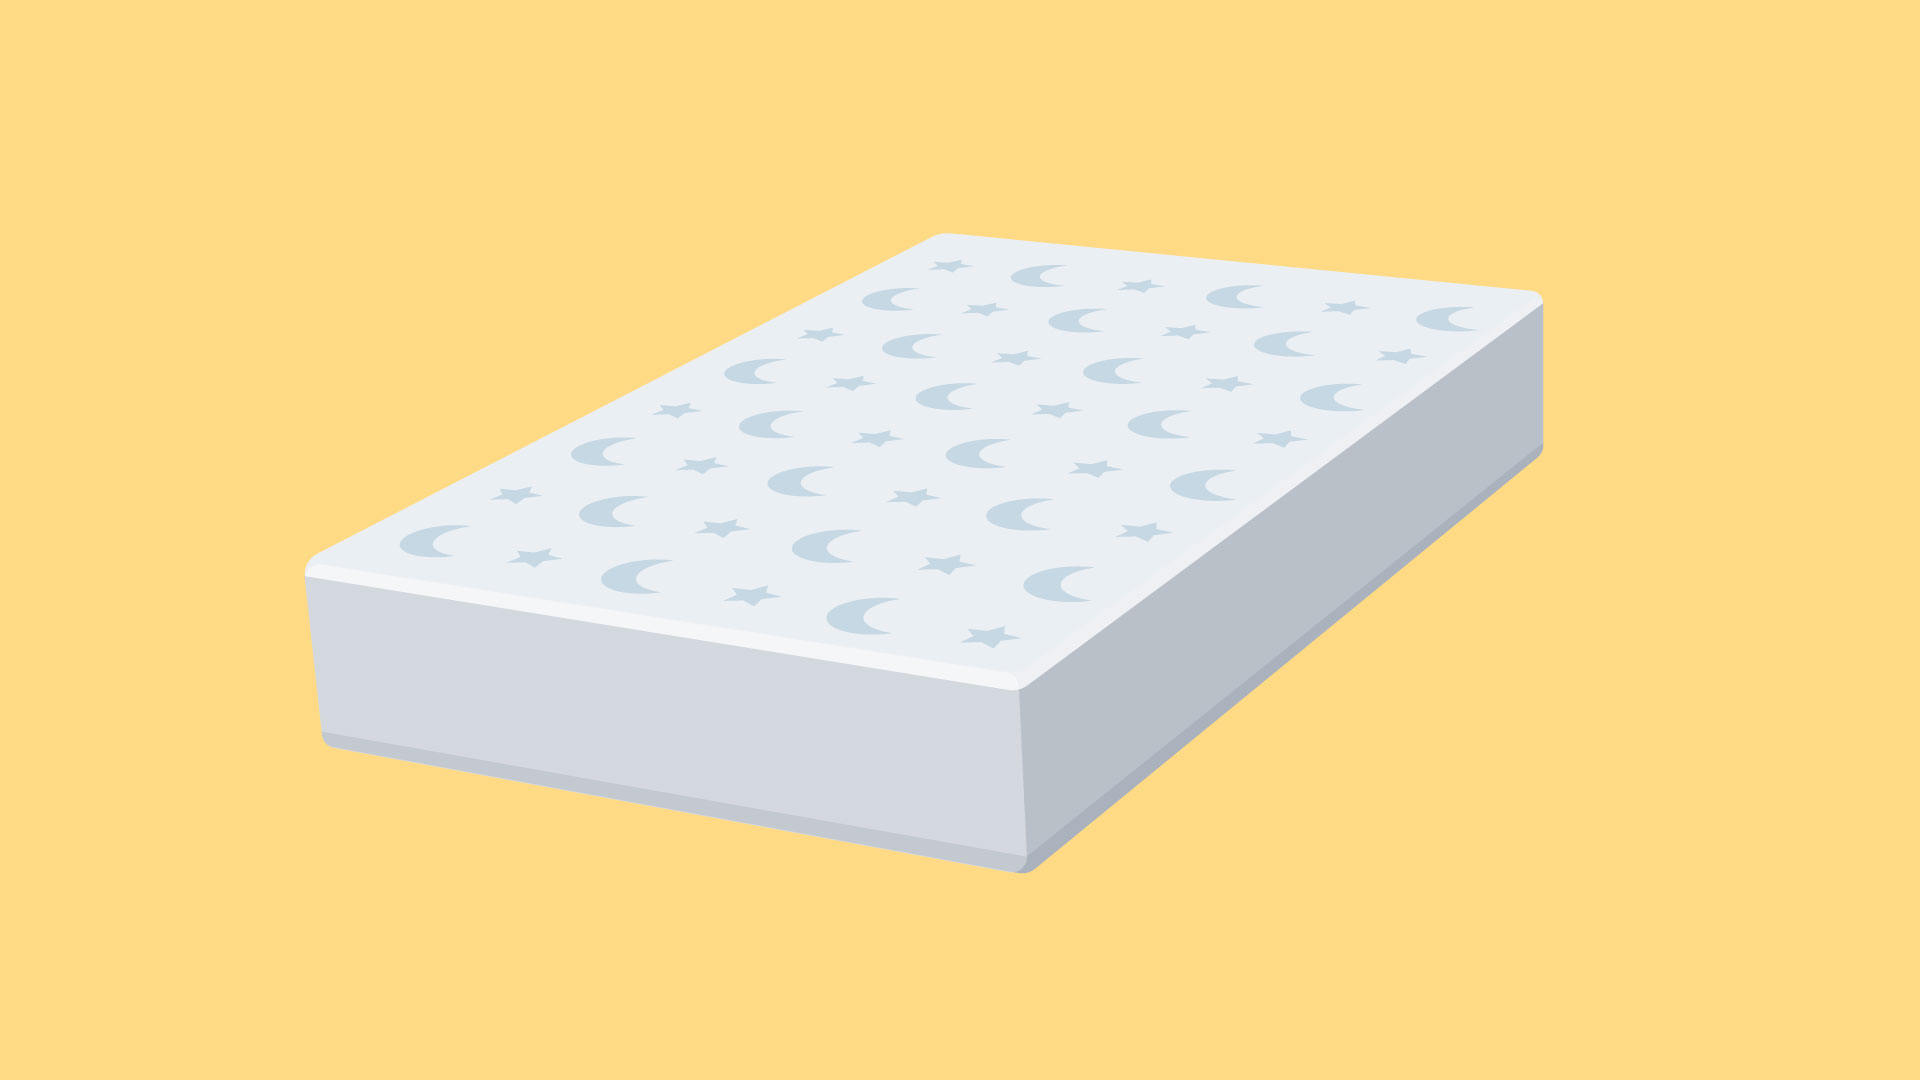 Firm, flat, waterproof mattress